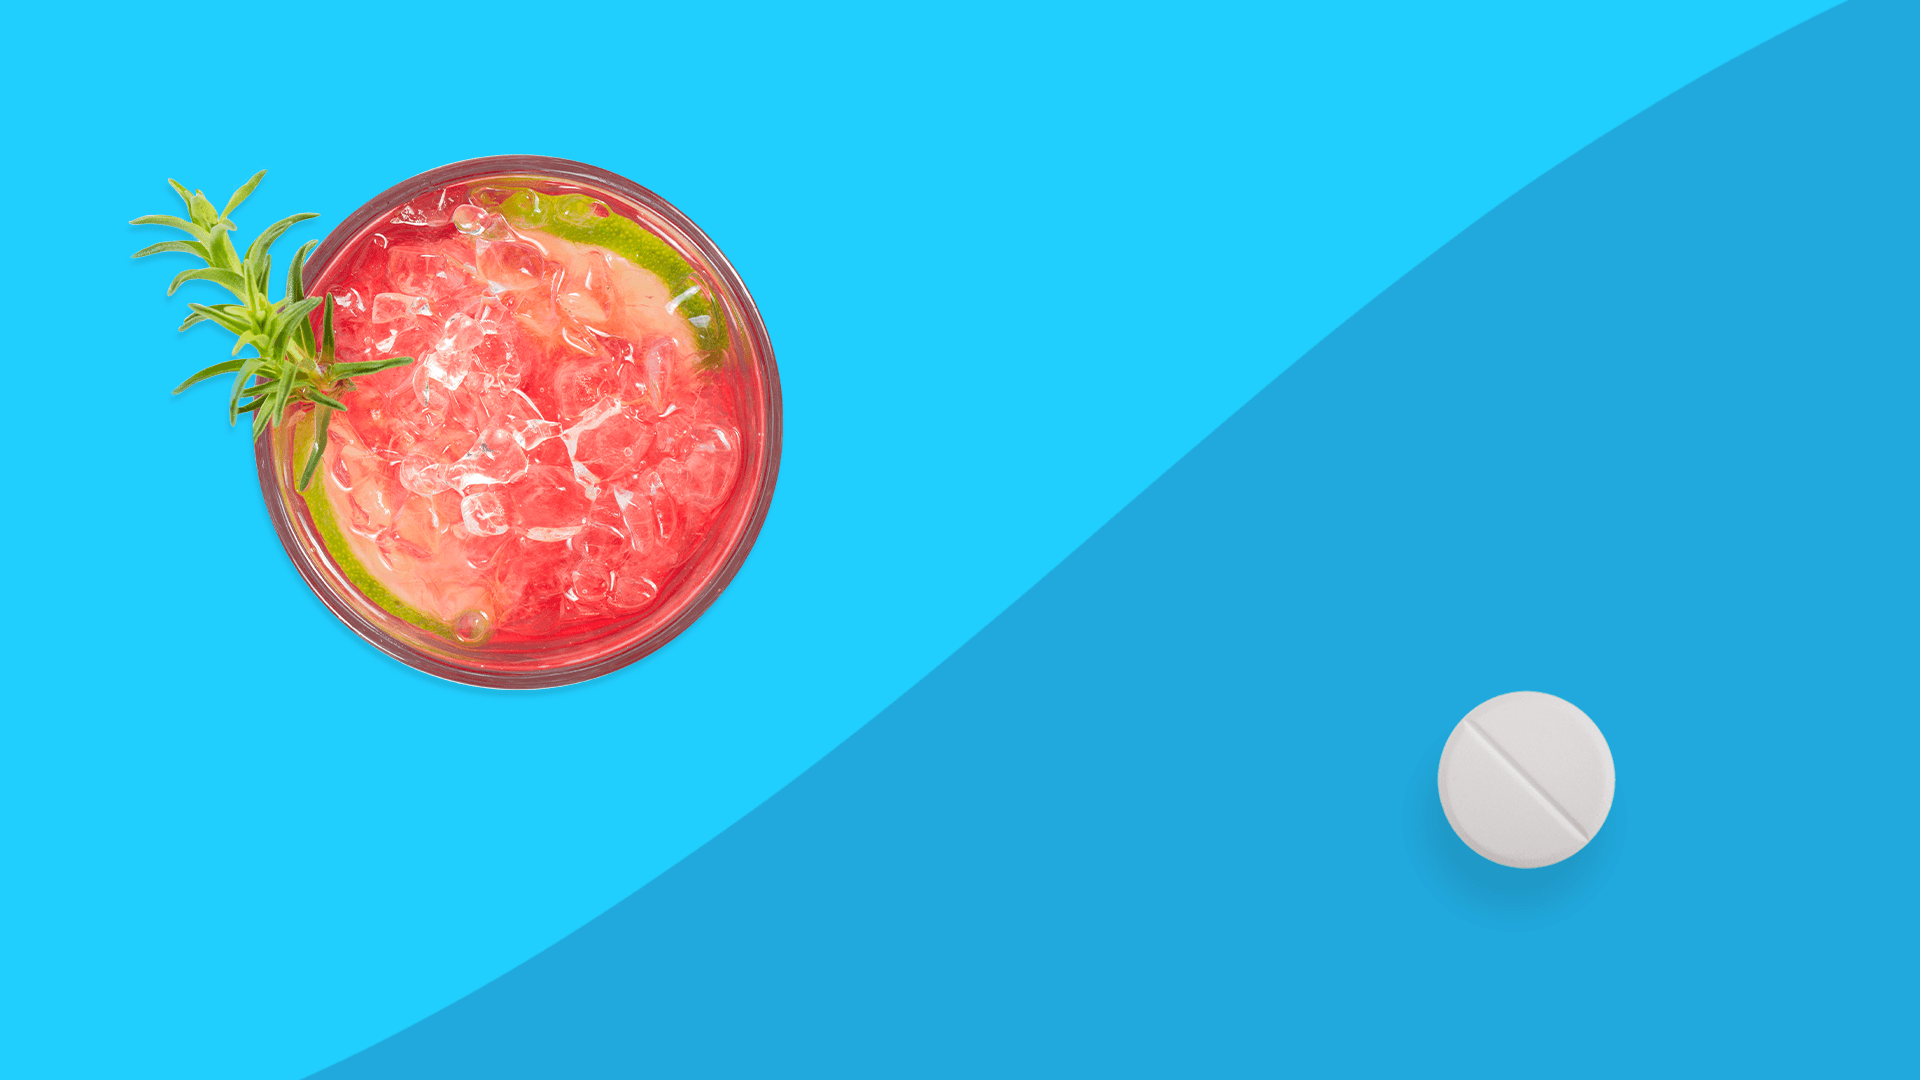 What happens when you mix Ambien and alcohol?